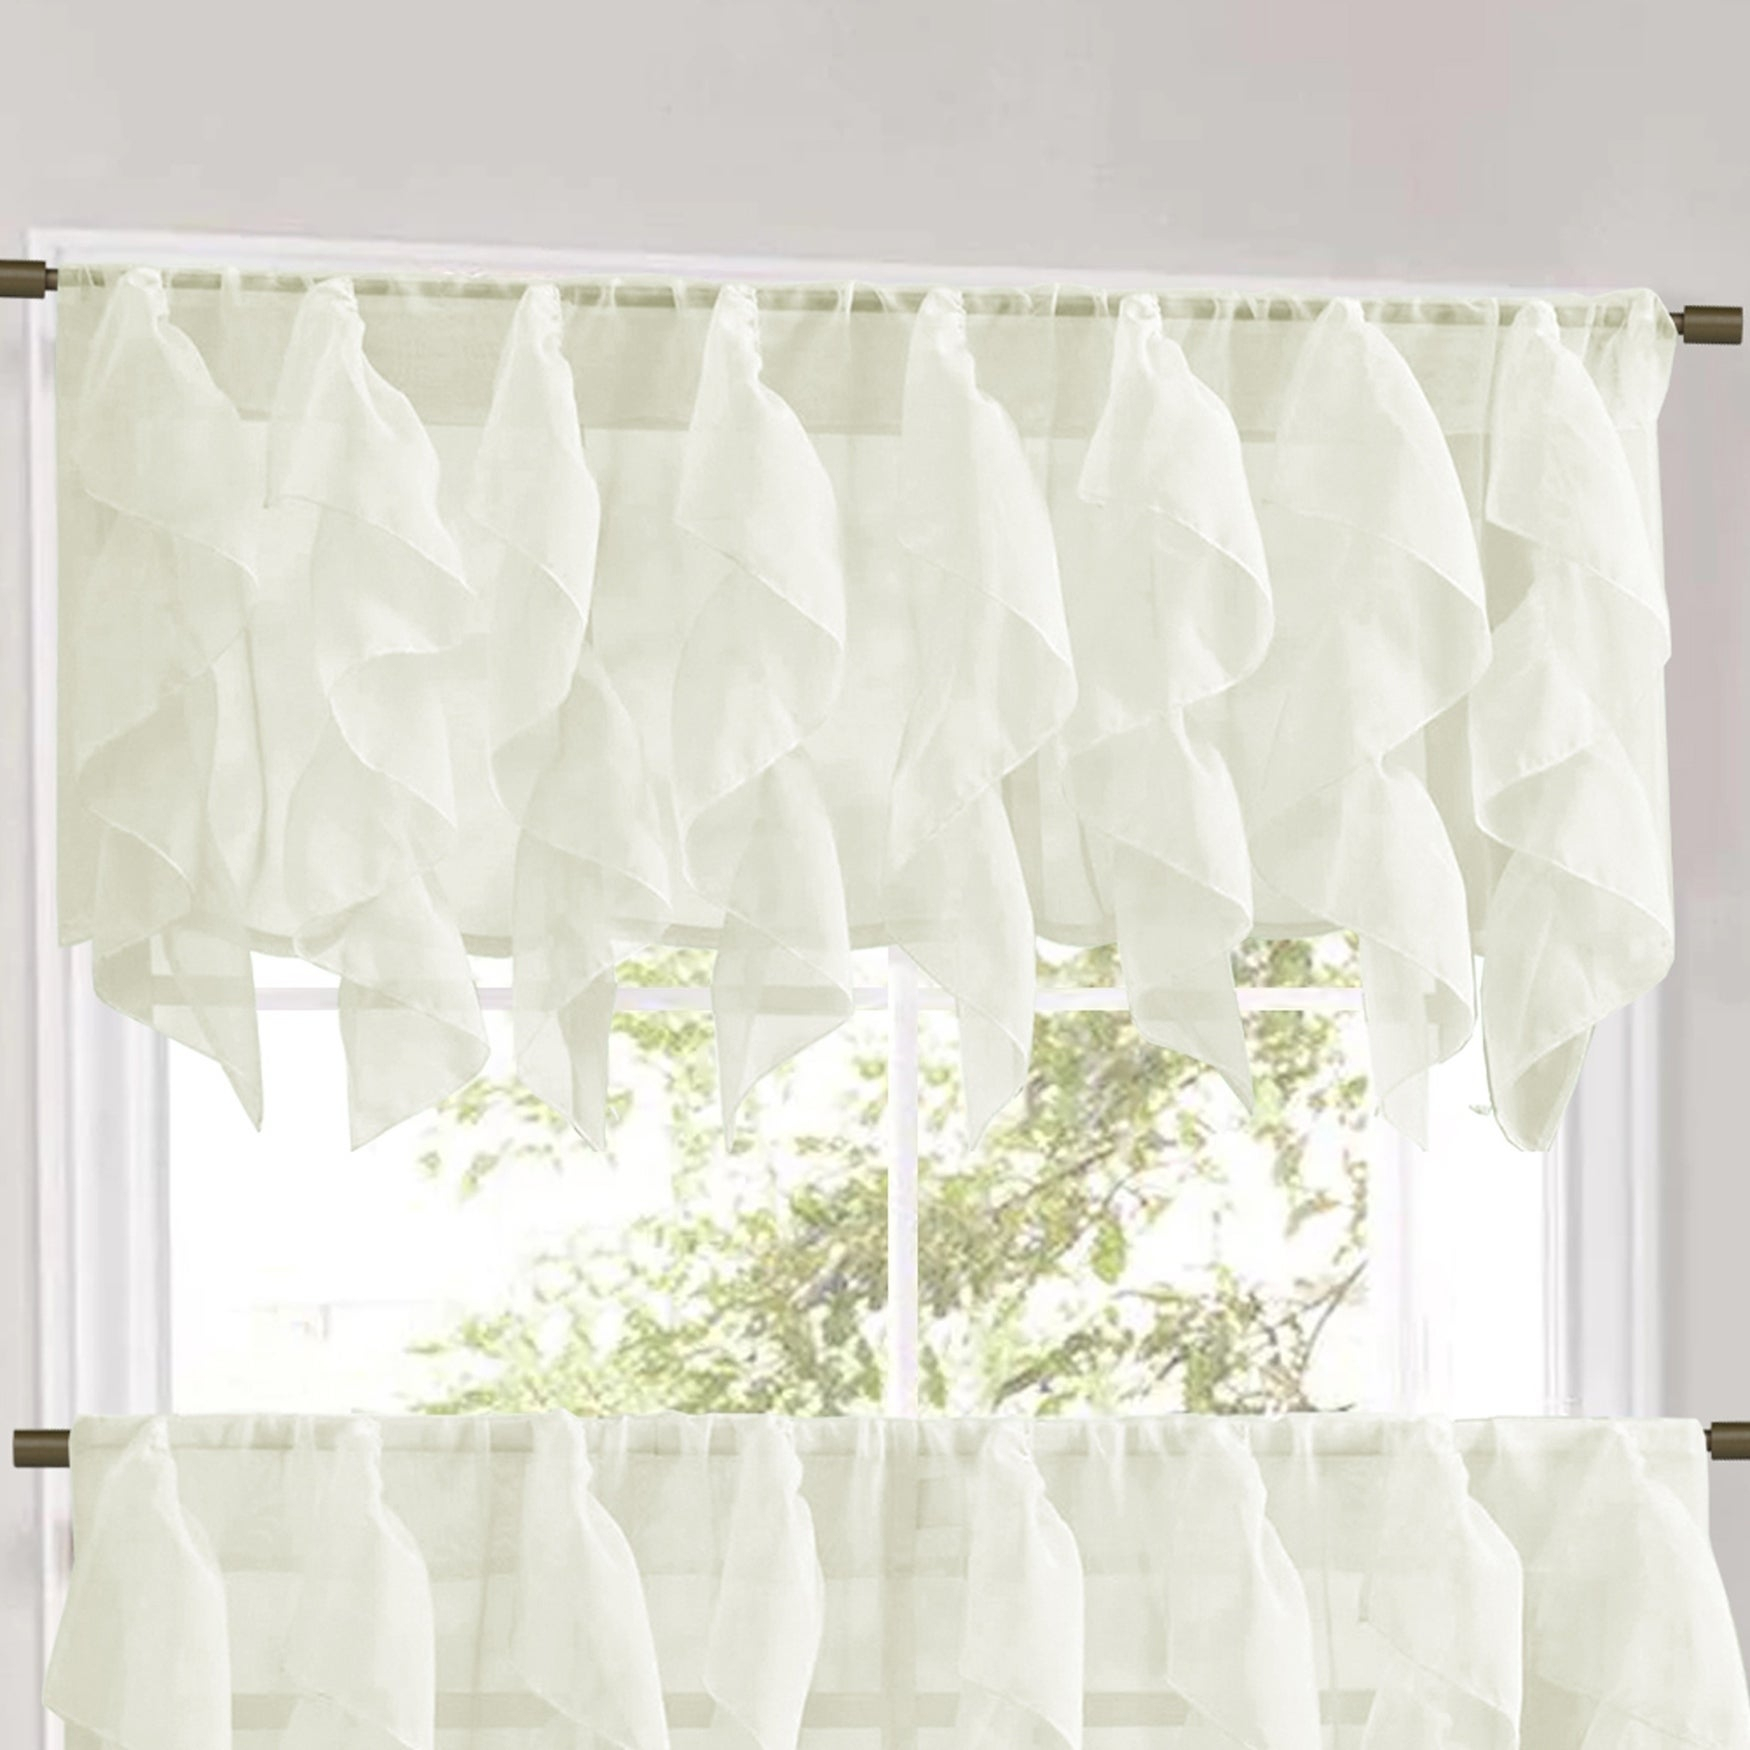 Vertical Ruffled Waterfall Window Curtain Pieces- Valance And Tiers Options  (Ivory) in Maize Vertical Ruffled Waterfall Valance And Curtain Tiers (Image 18 of 20)